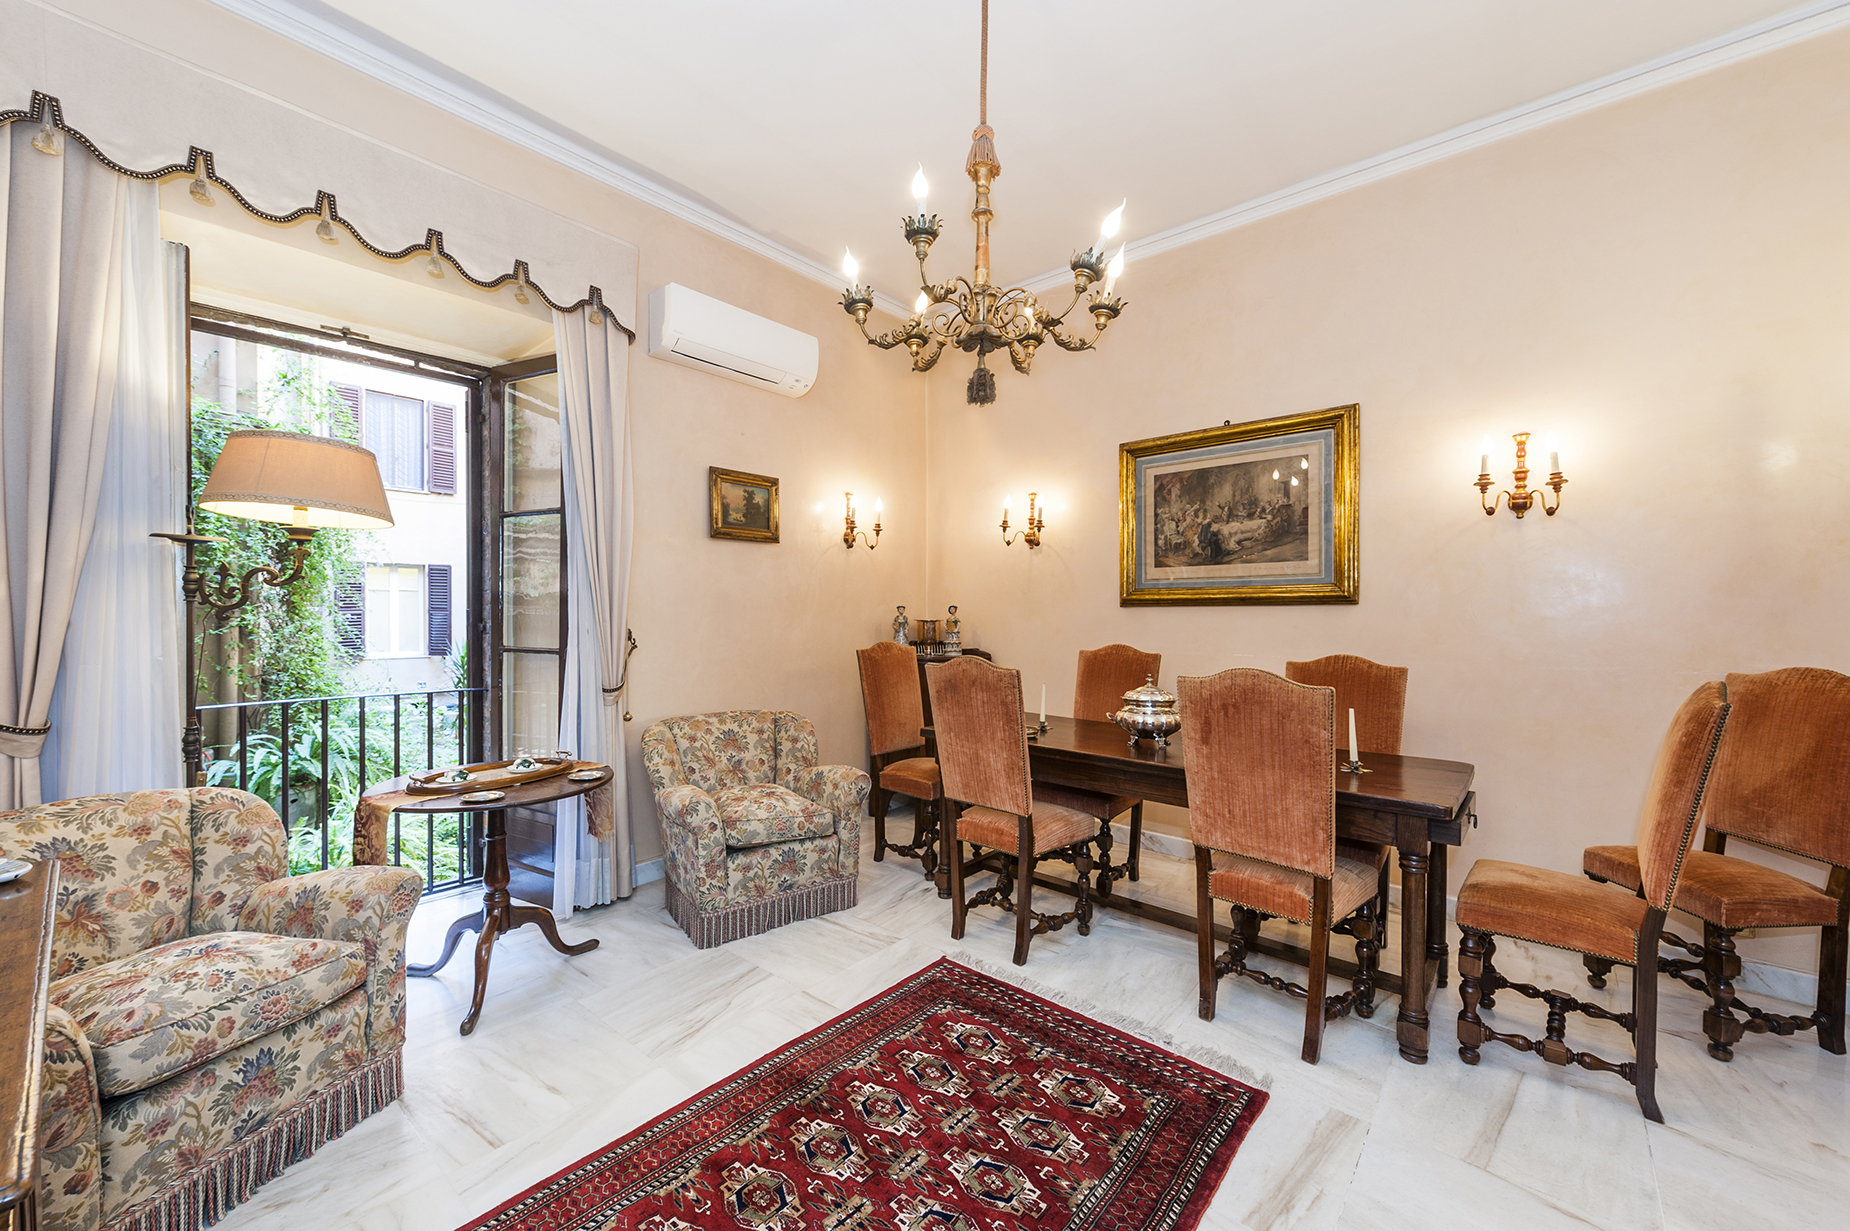 Apartment for Sale at Charming apartment in the heart of Rome Rome, Rome Italy